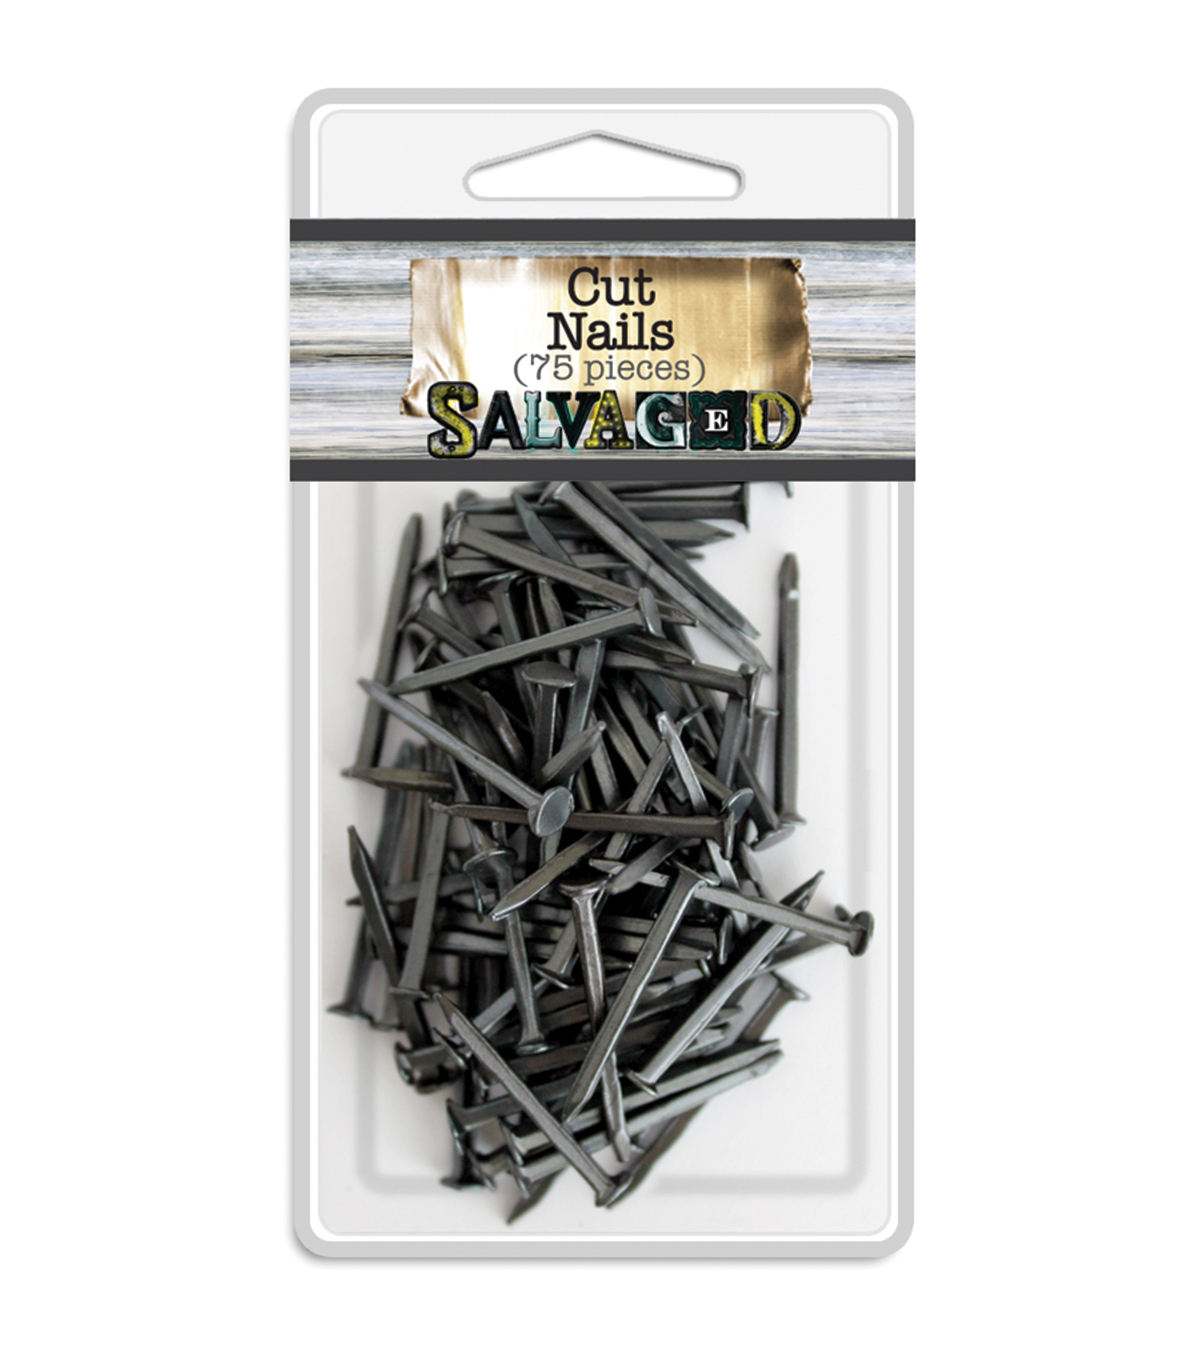 Salvaged Cut Nails